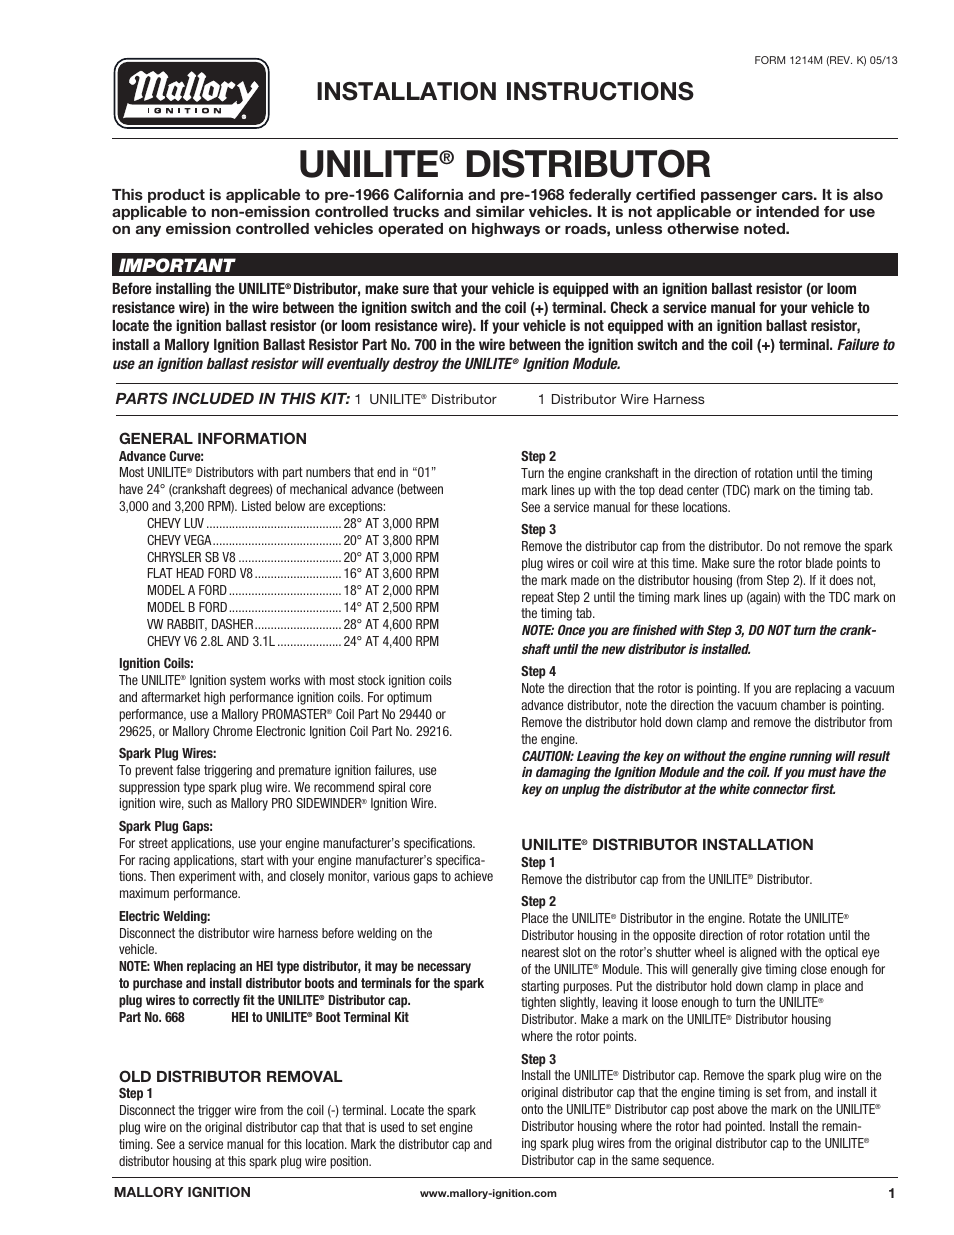 Mallory ignition mallory unilite distributor 37384547 user mallory ignition mallory unilite distributor 37384547 user manual 4 pages sciox Image collections